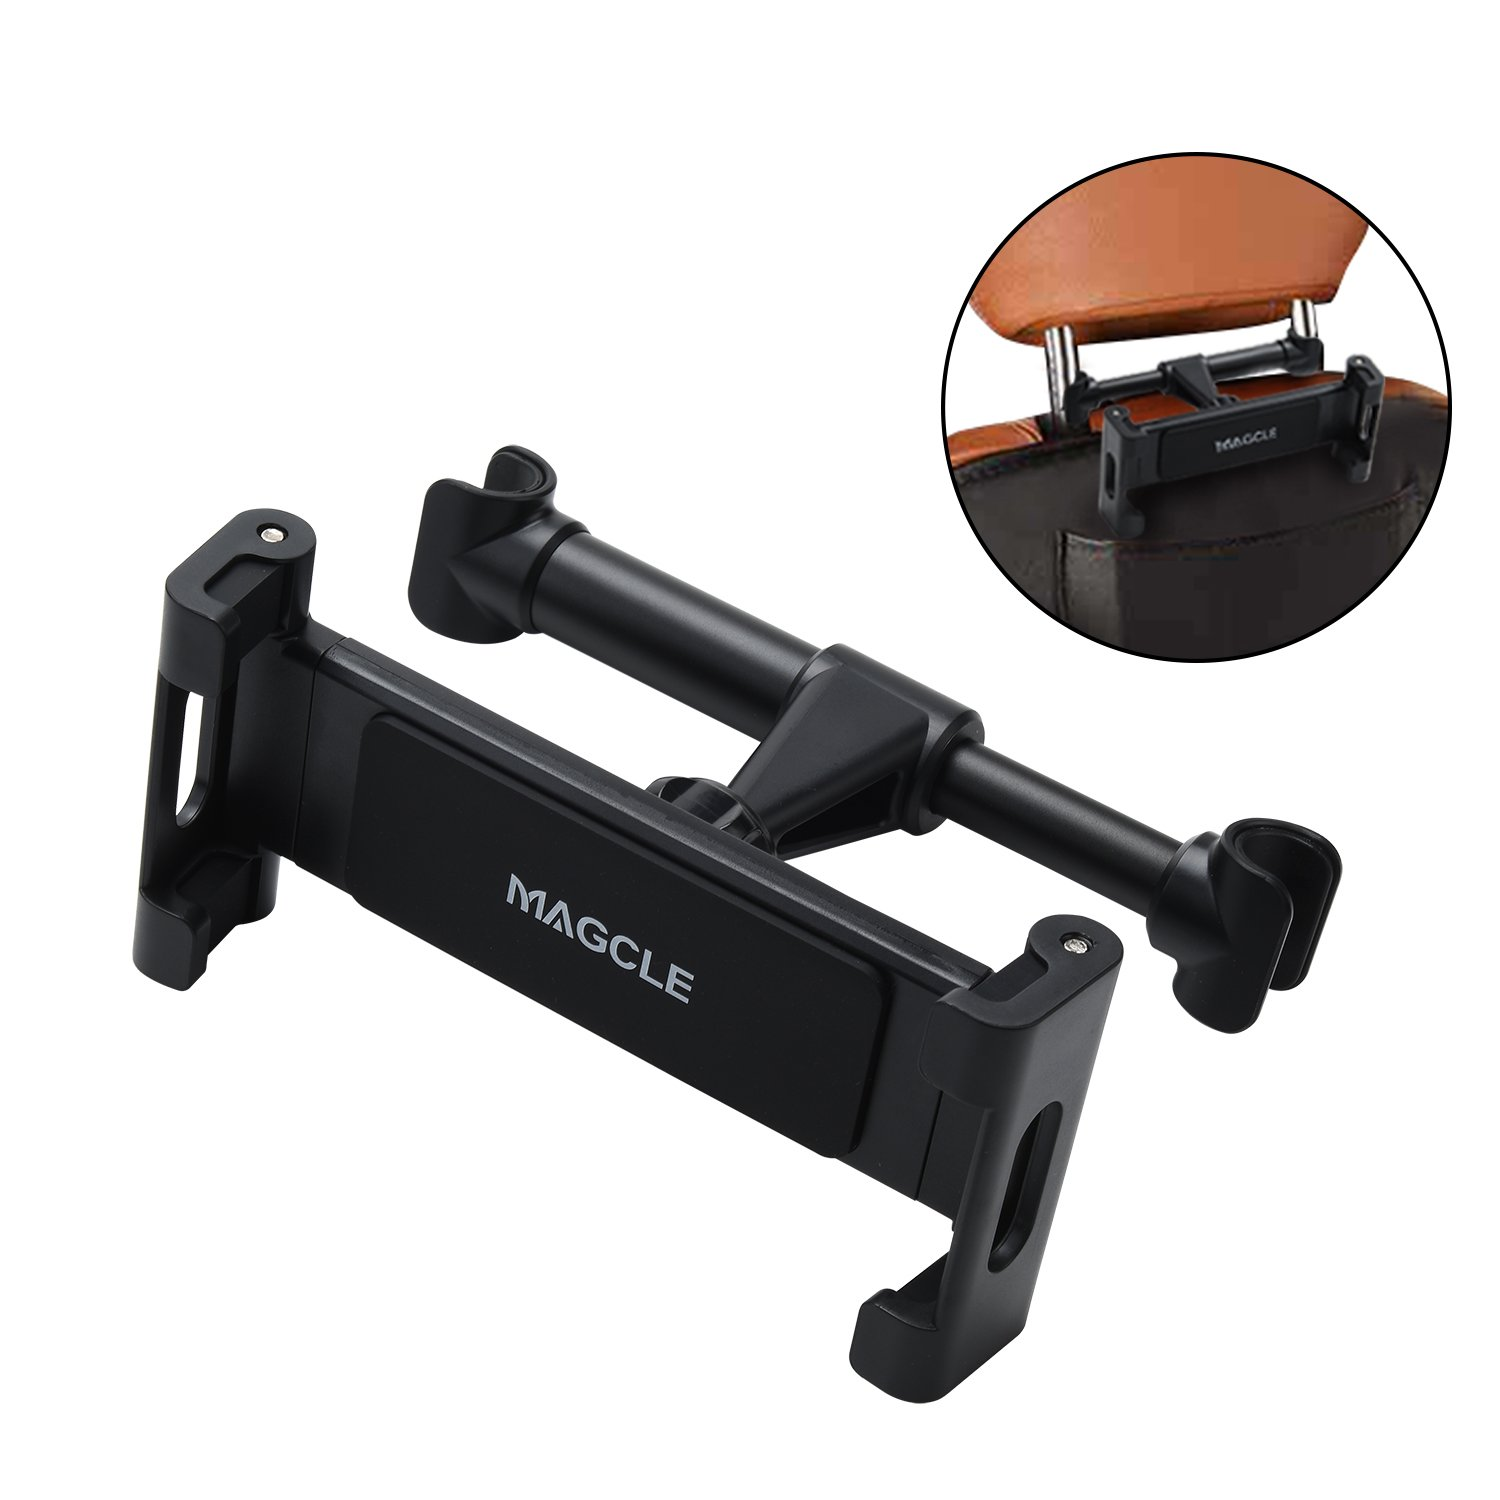 Car Headrest iPad Mount, Magcle iPhone Holder,Back Seat Tablet Stand Cradle [Upgrade] for iPad Pro 9.7, 10.5, Air mini 2 3 4, Nintendo Switch E-reader,Smart Phone, Tablets (4.7~13 inch) (black) by Magcle (Image #1)